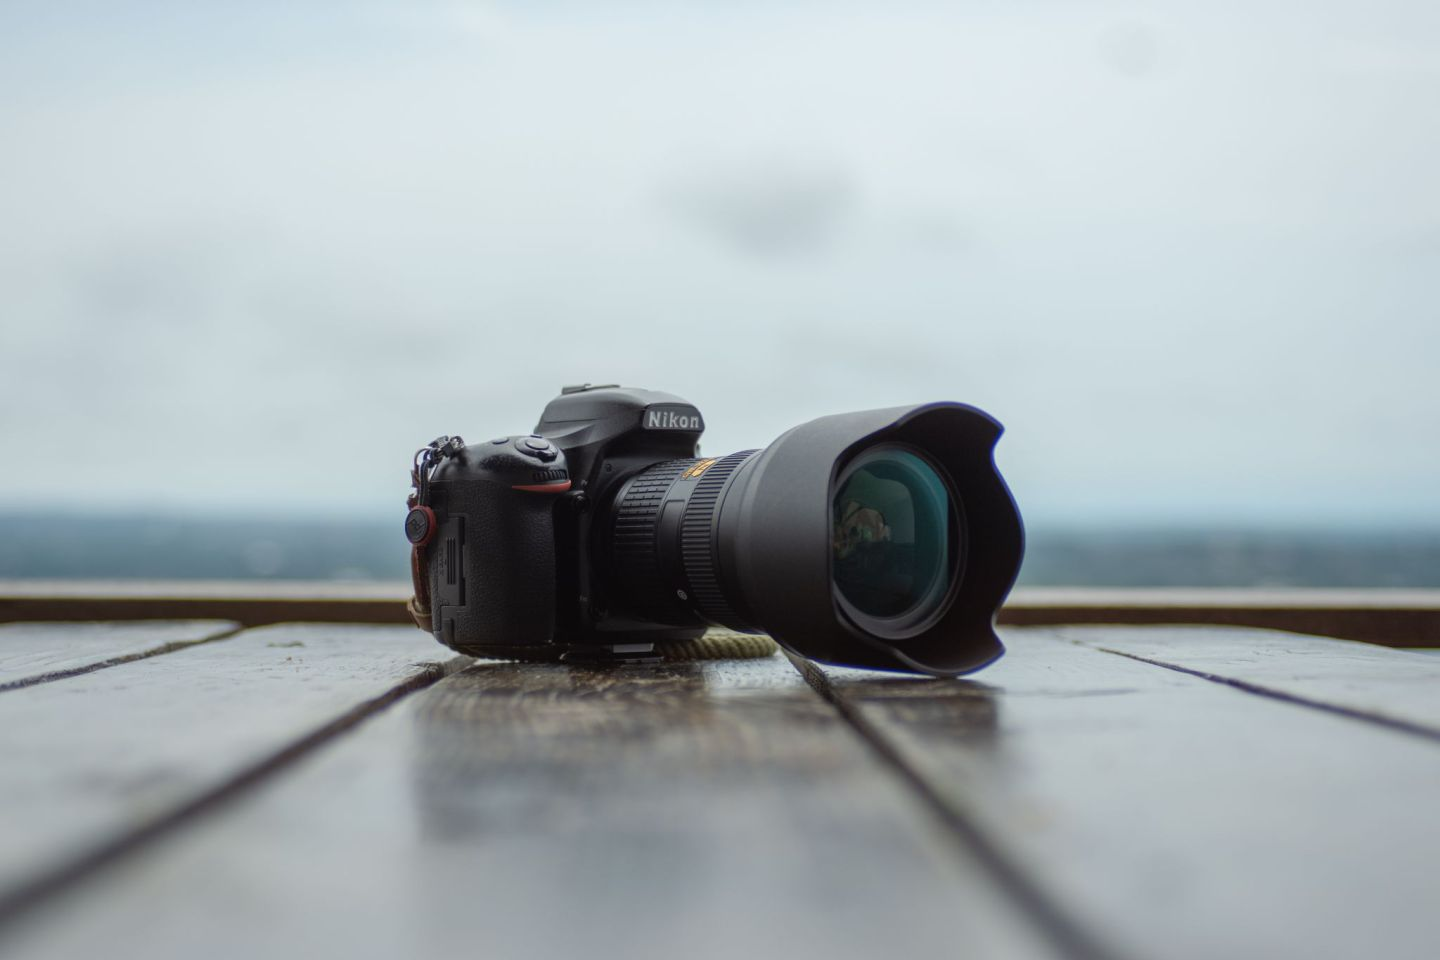 Embracing phtography as part of your many passions